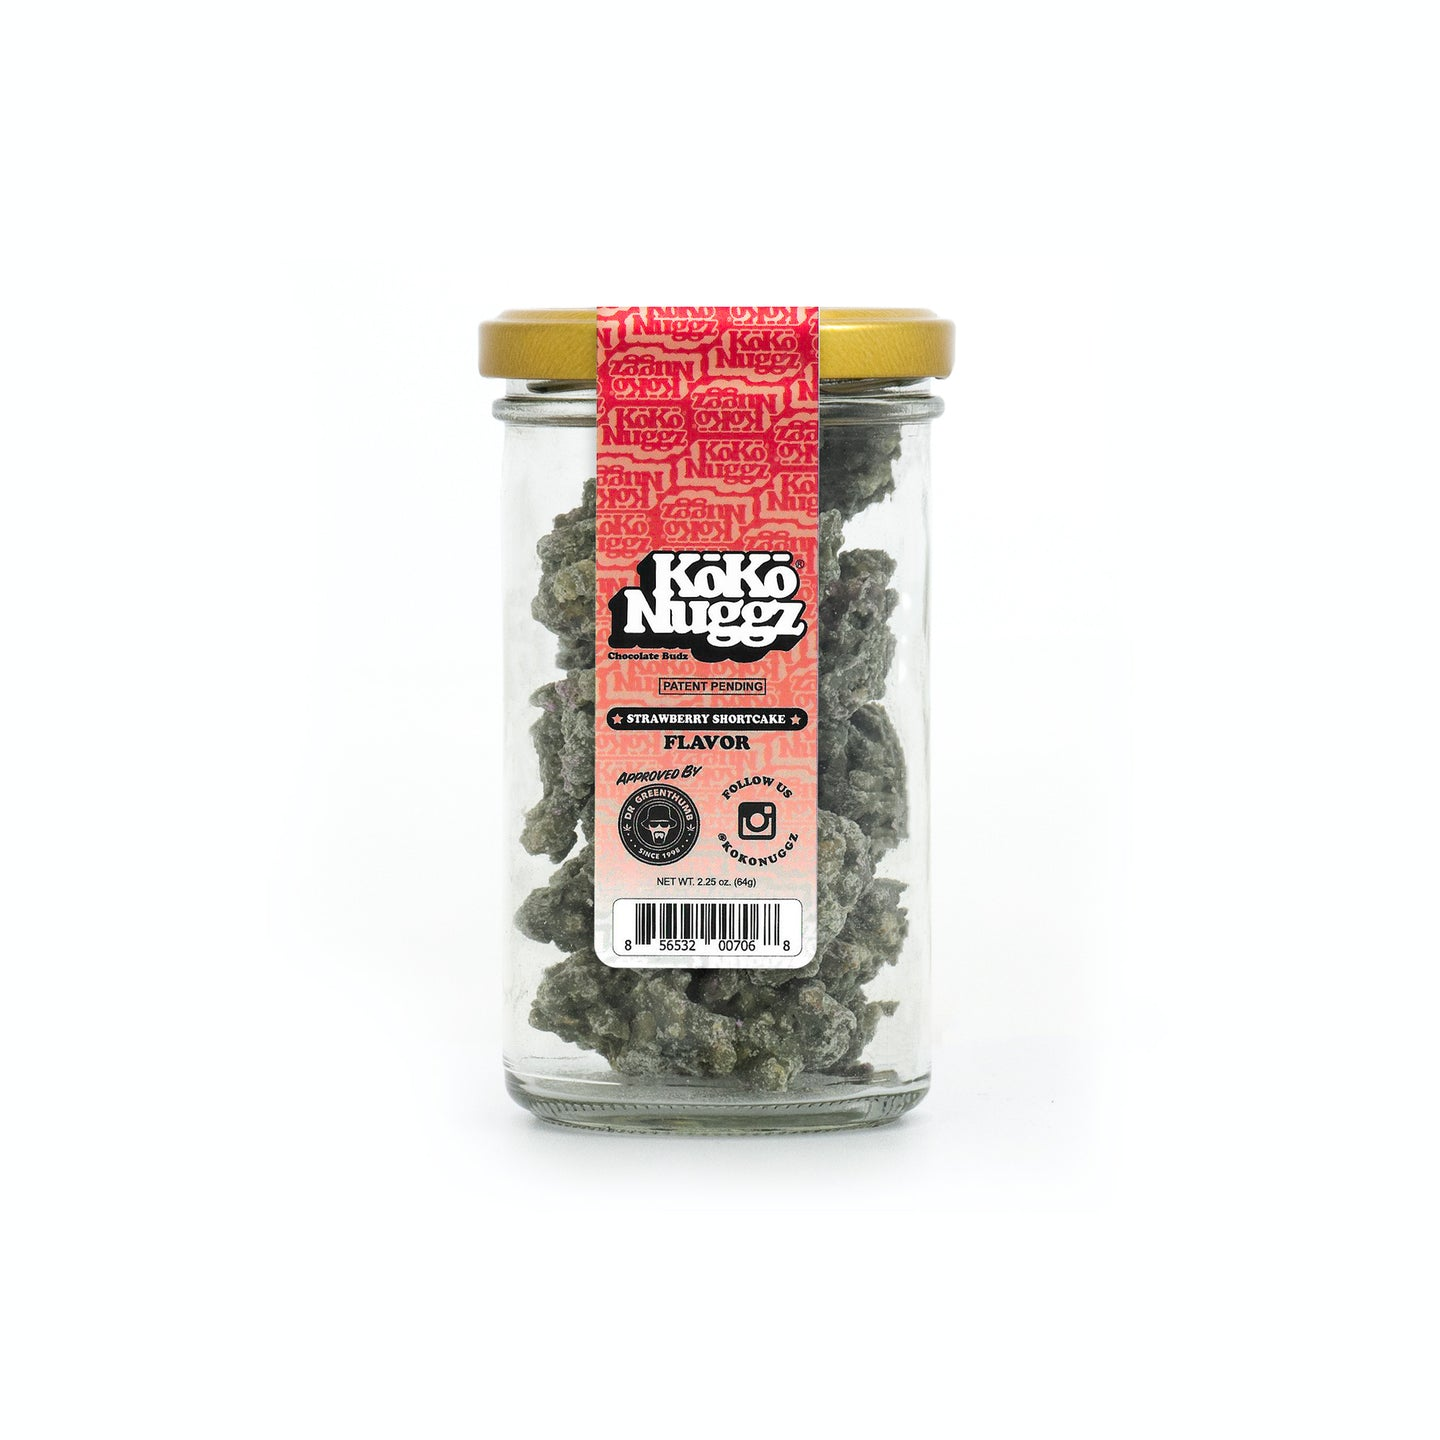 Strawberry Shortcake - 2.25oz - Koko Nuggz Europe